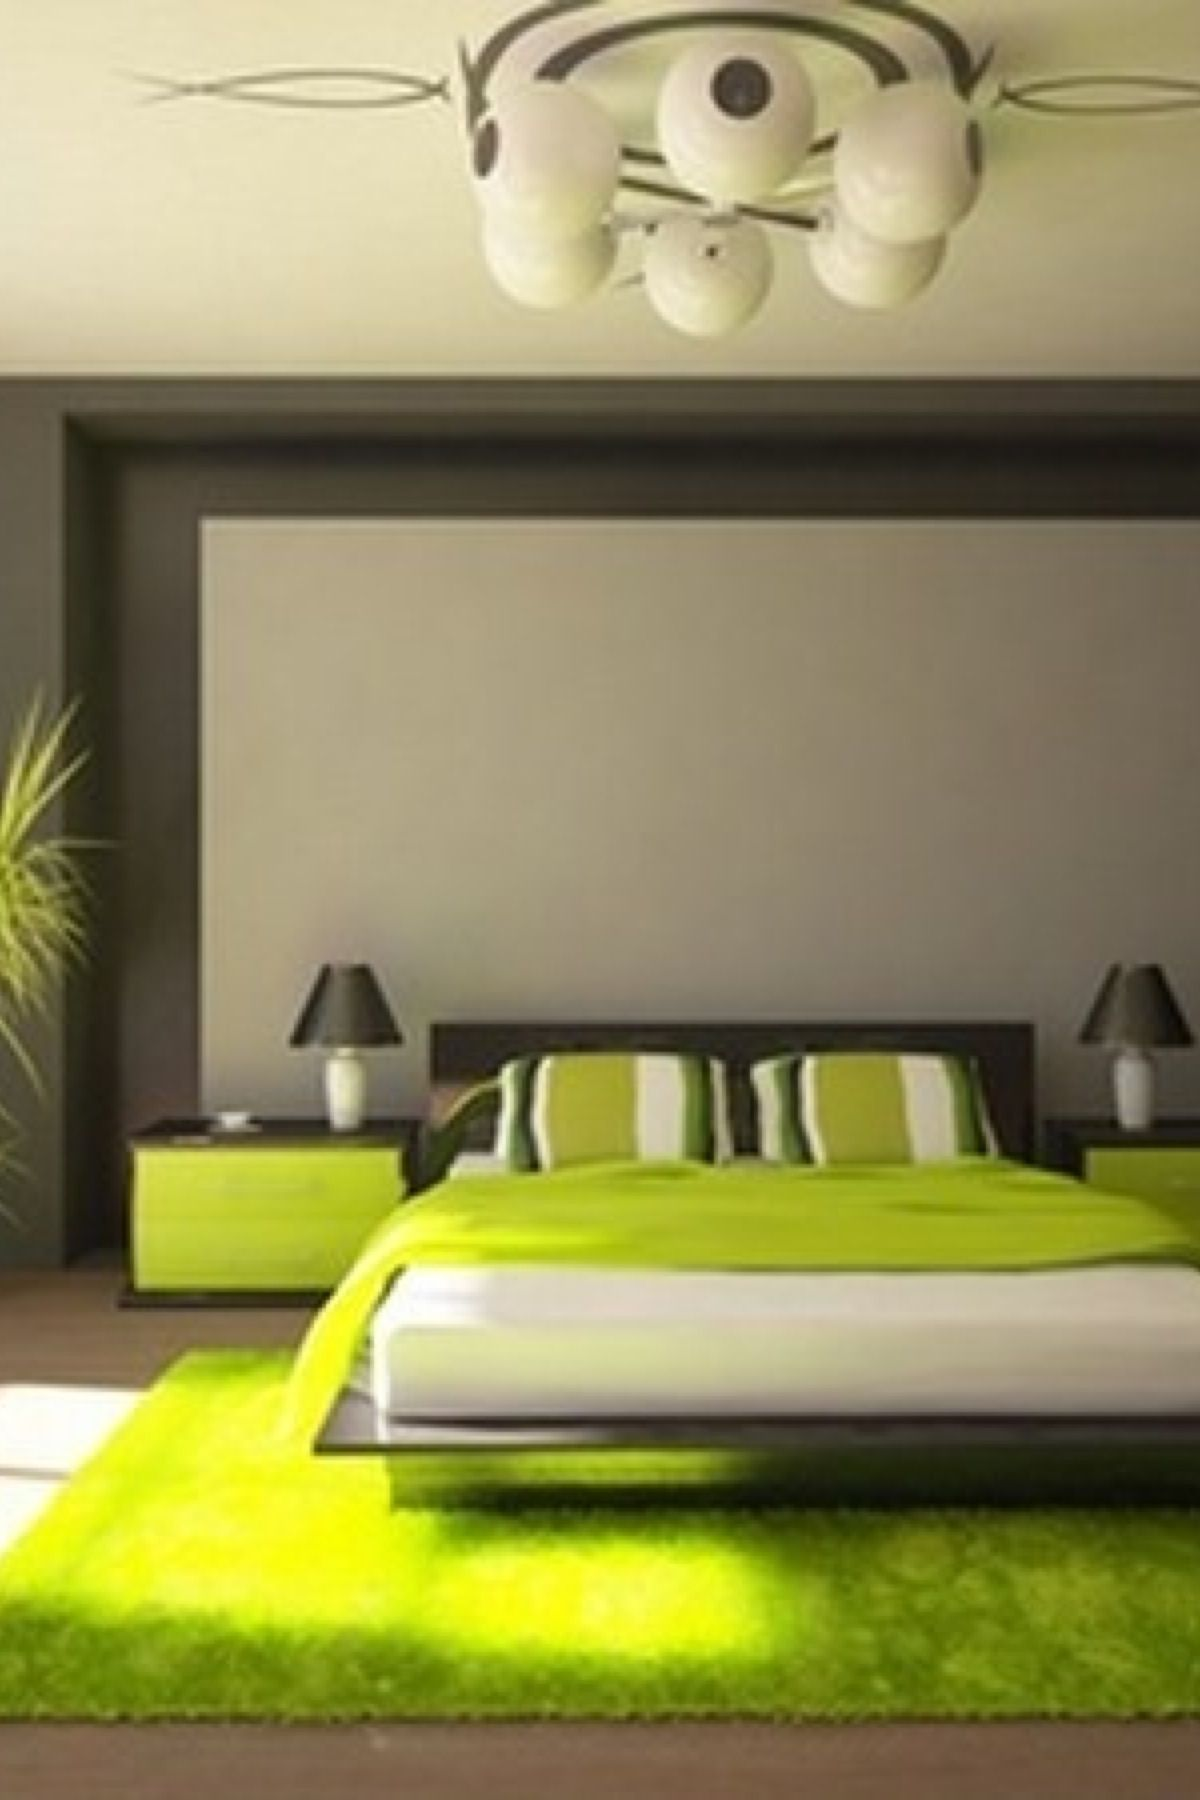 Chambre Verte Et Grise Chambre Verte Lime Et Grise Decor In 2019 Green Bedroom Design